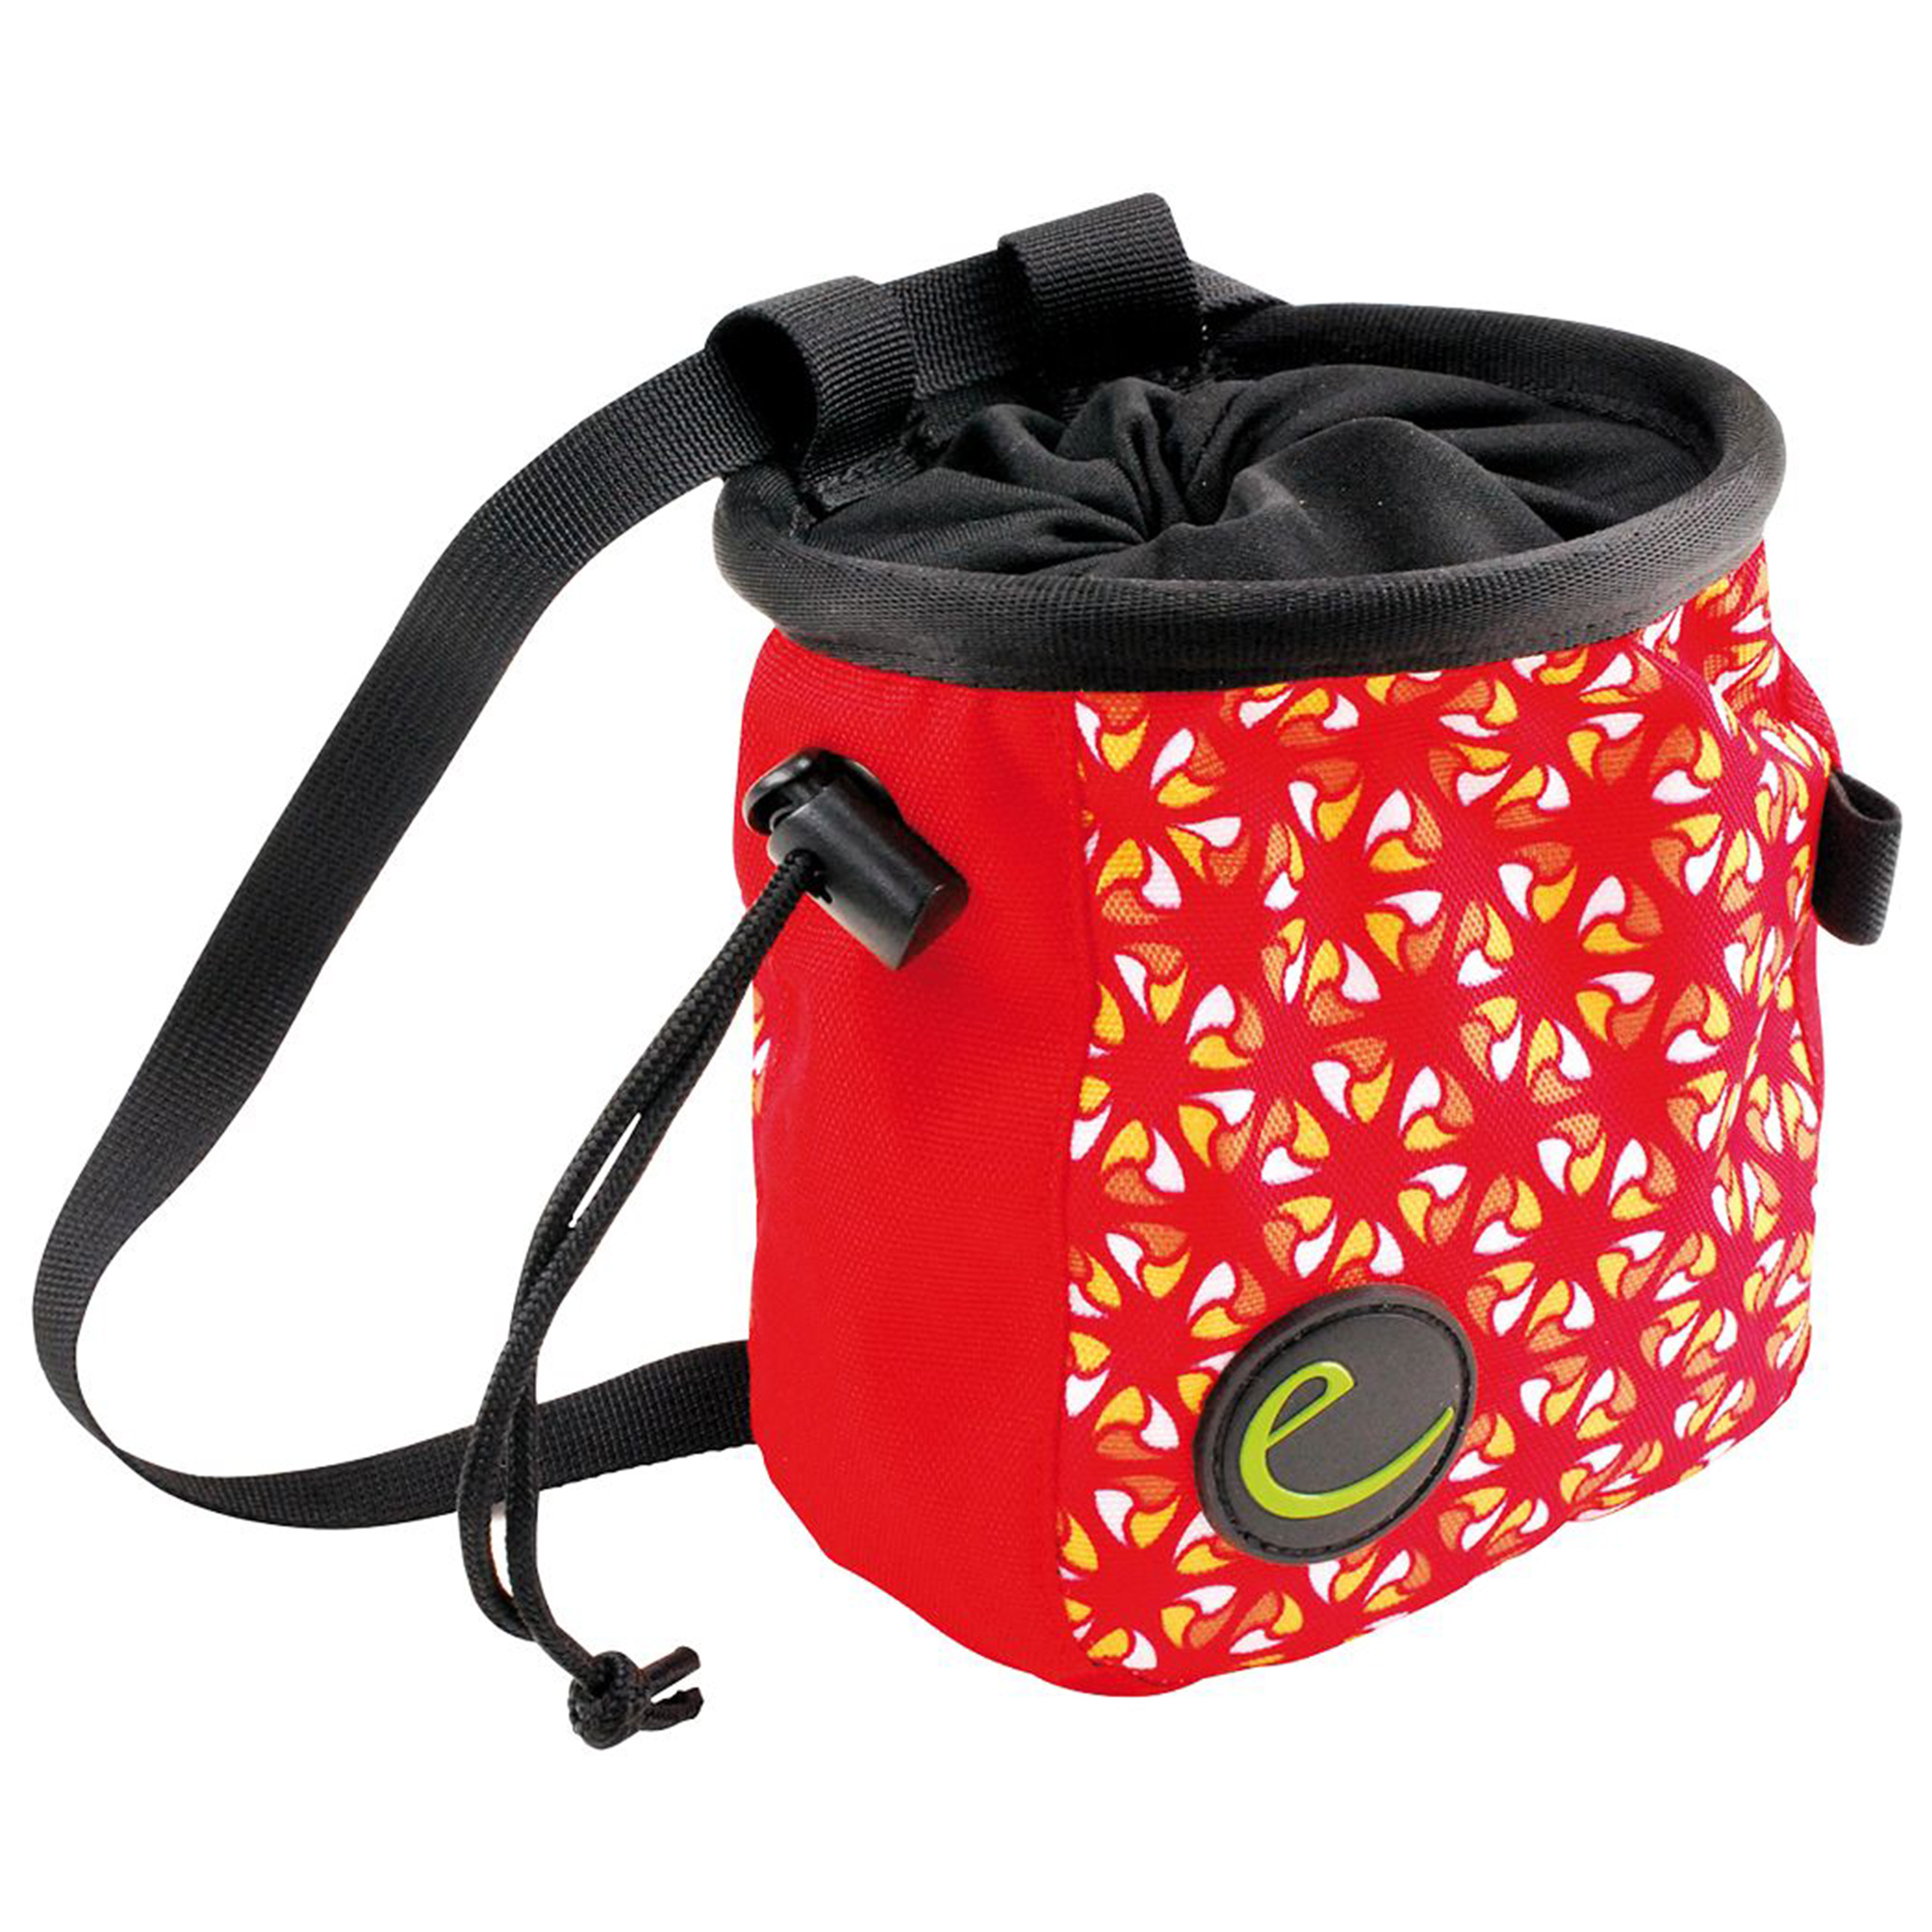 Chalkbag Edelrid Cosmic Lady red-orange